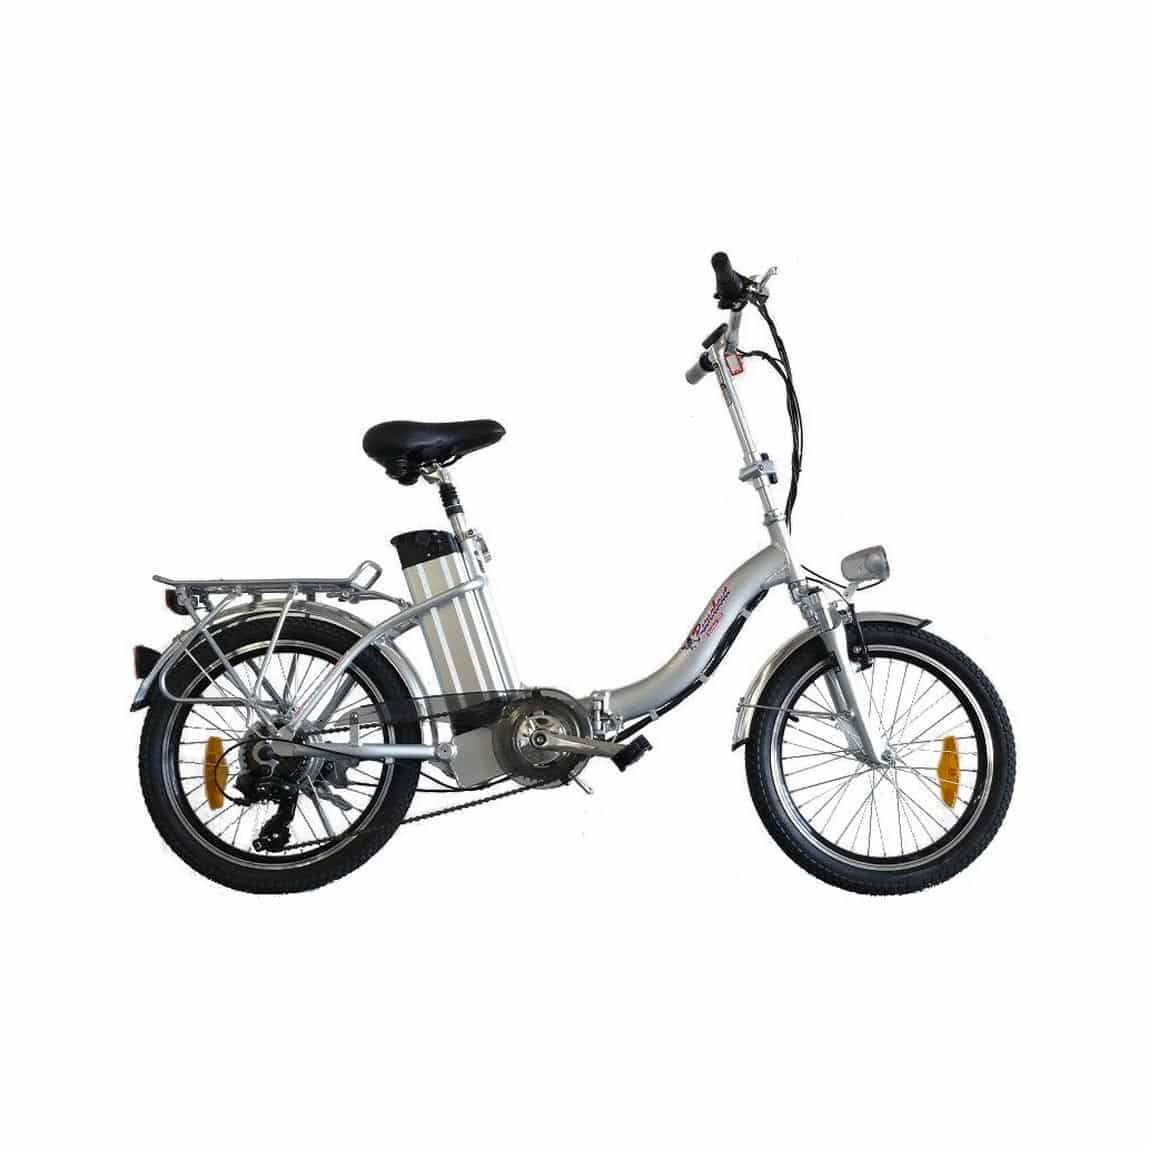 Ctma Runabout Electric Bike